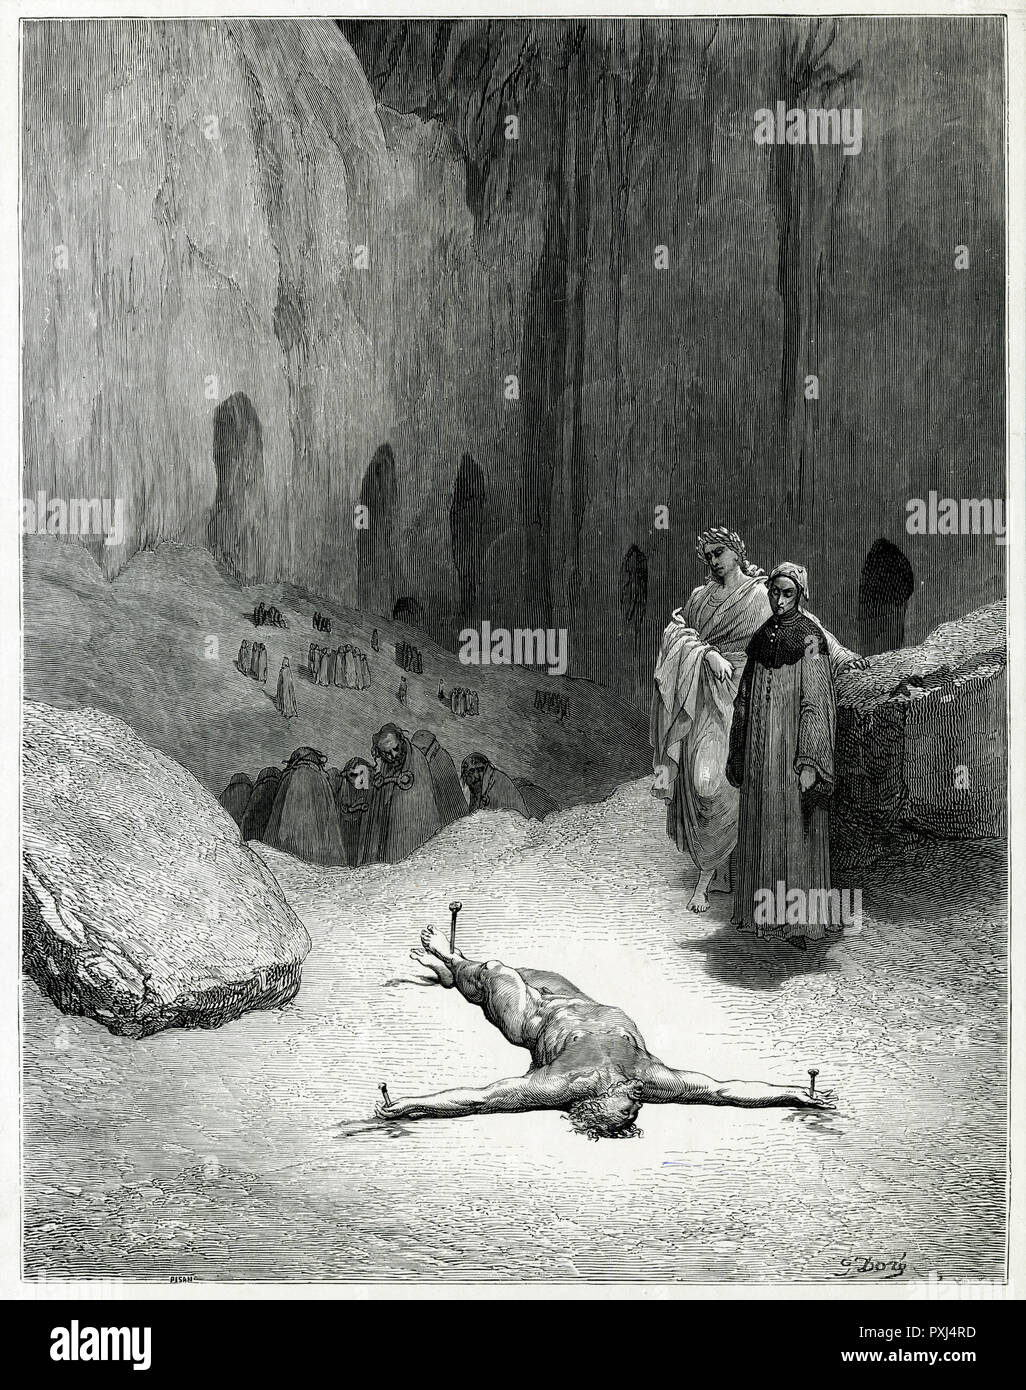 A sinner is pegged out on the ground of Hell, condemned to suffer thus for ever...      Date: First published: 1307-21? - Stock Image